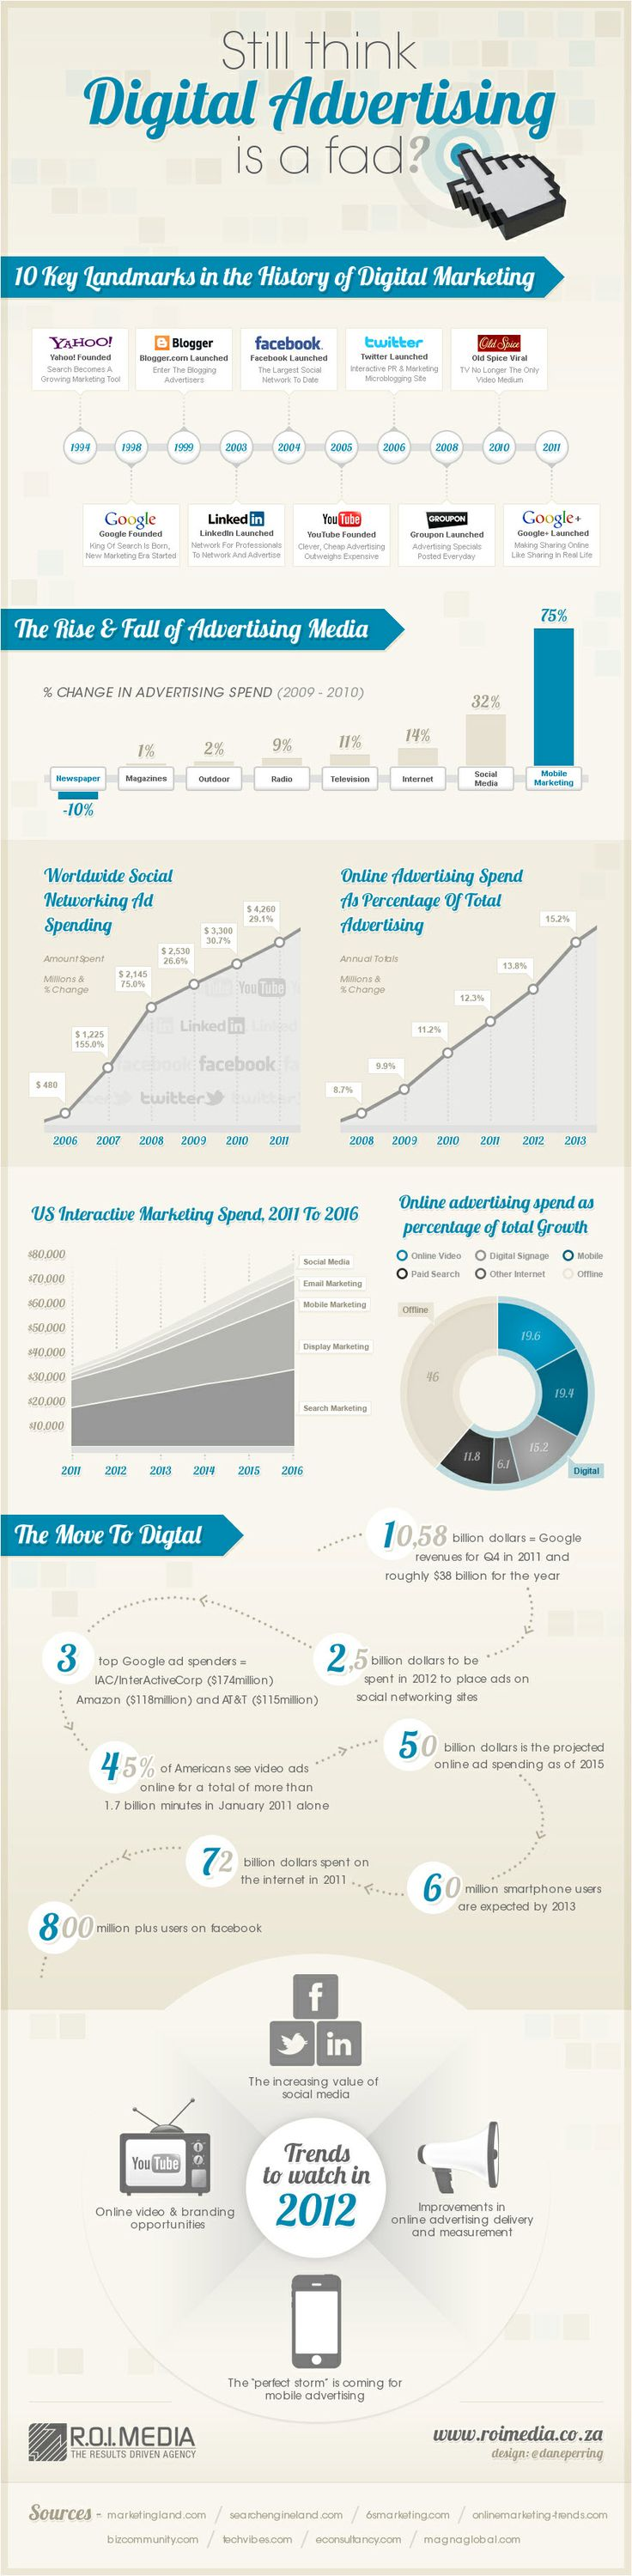 The Digital Advertising Age is Here to Stay (Infographic)